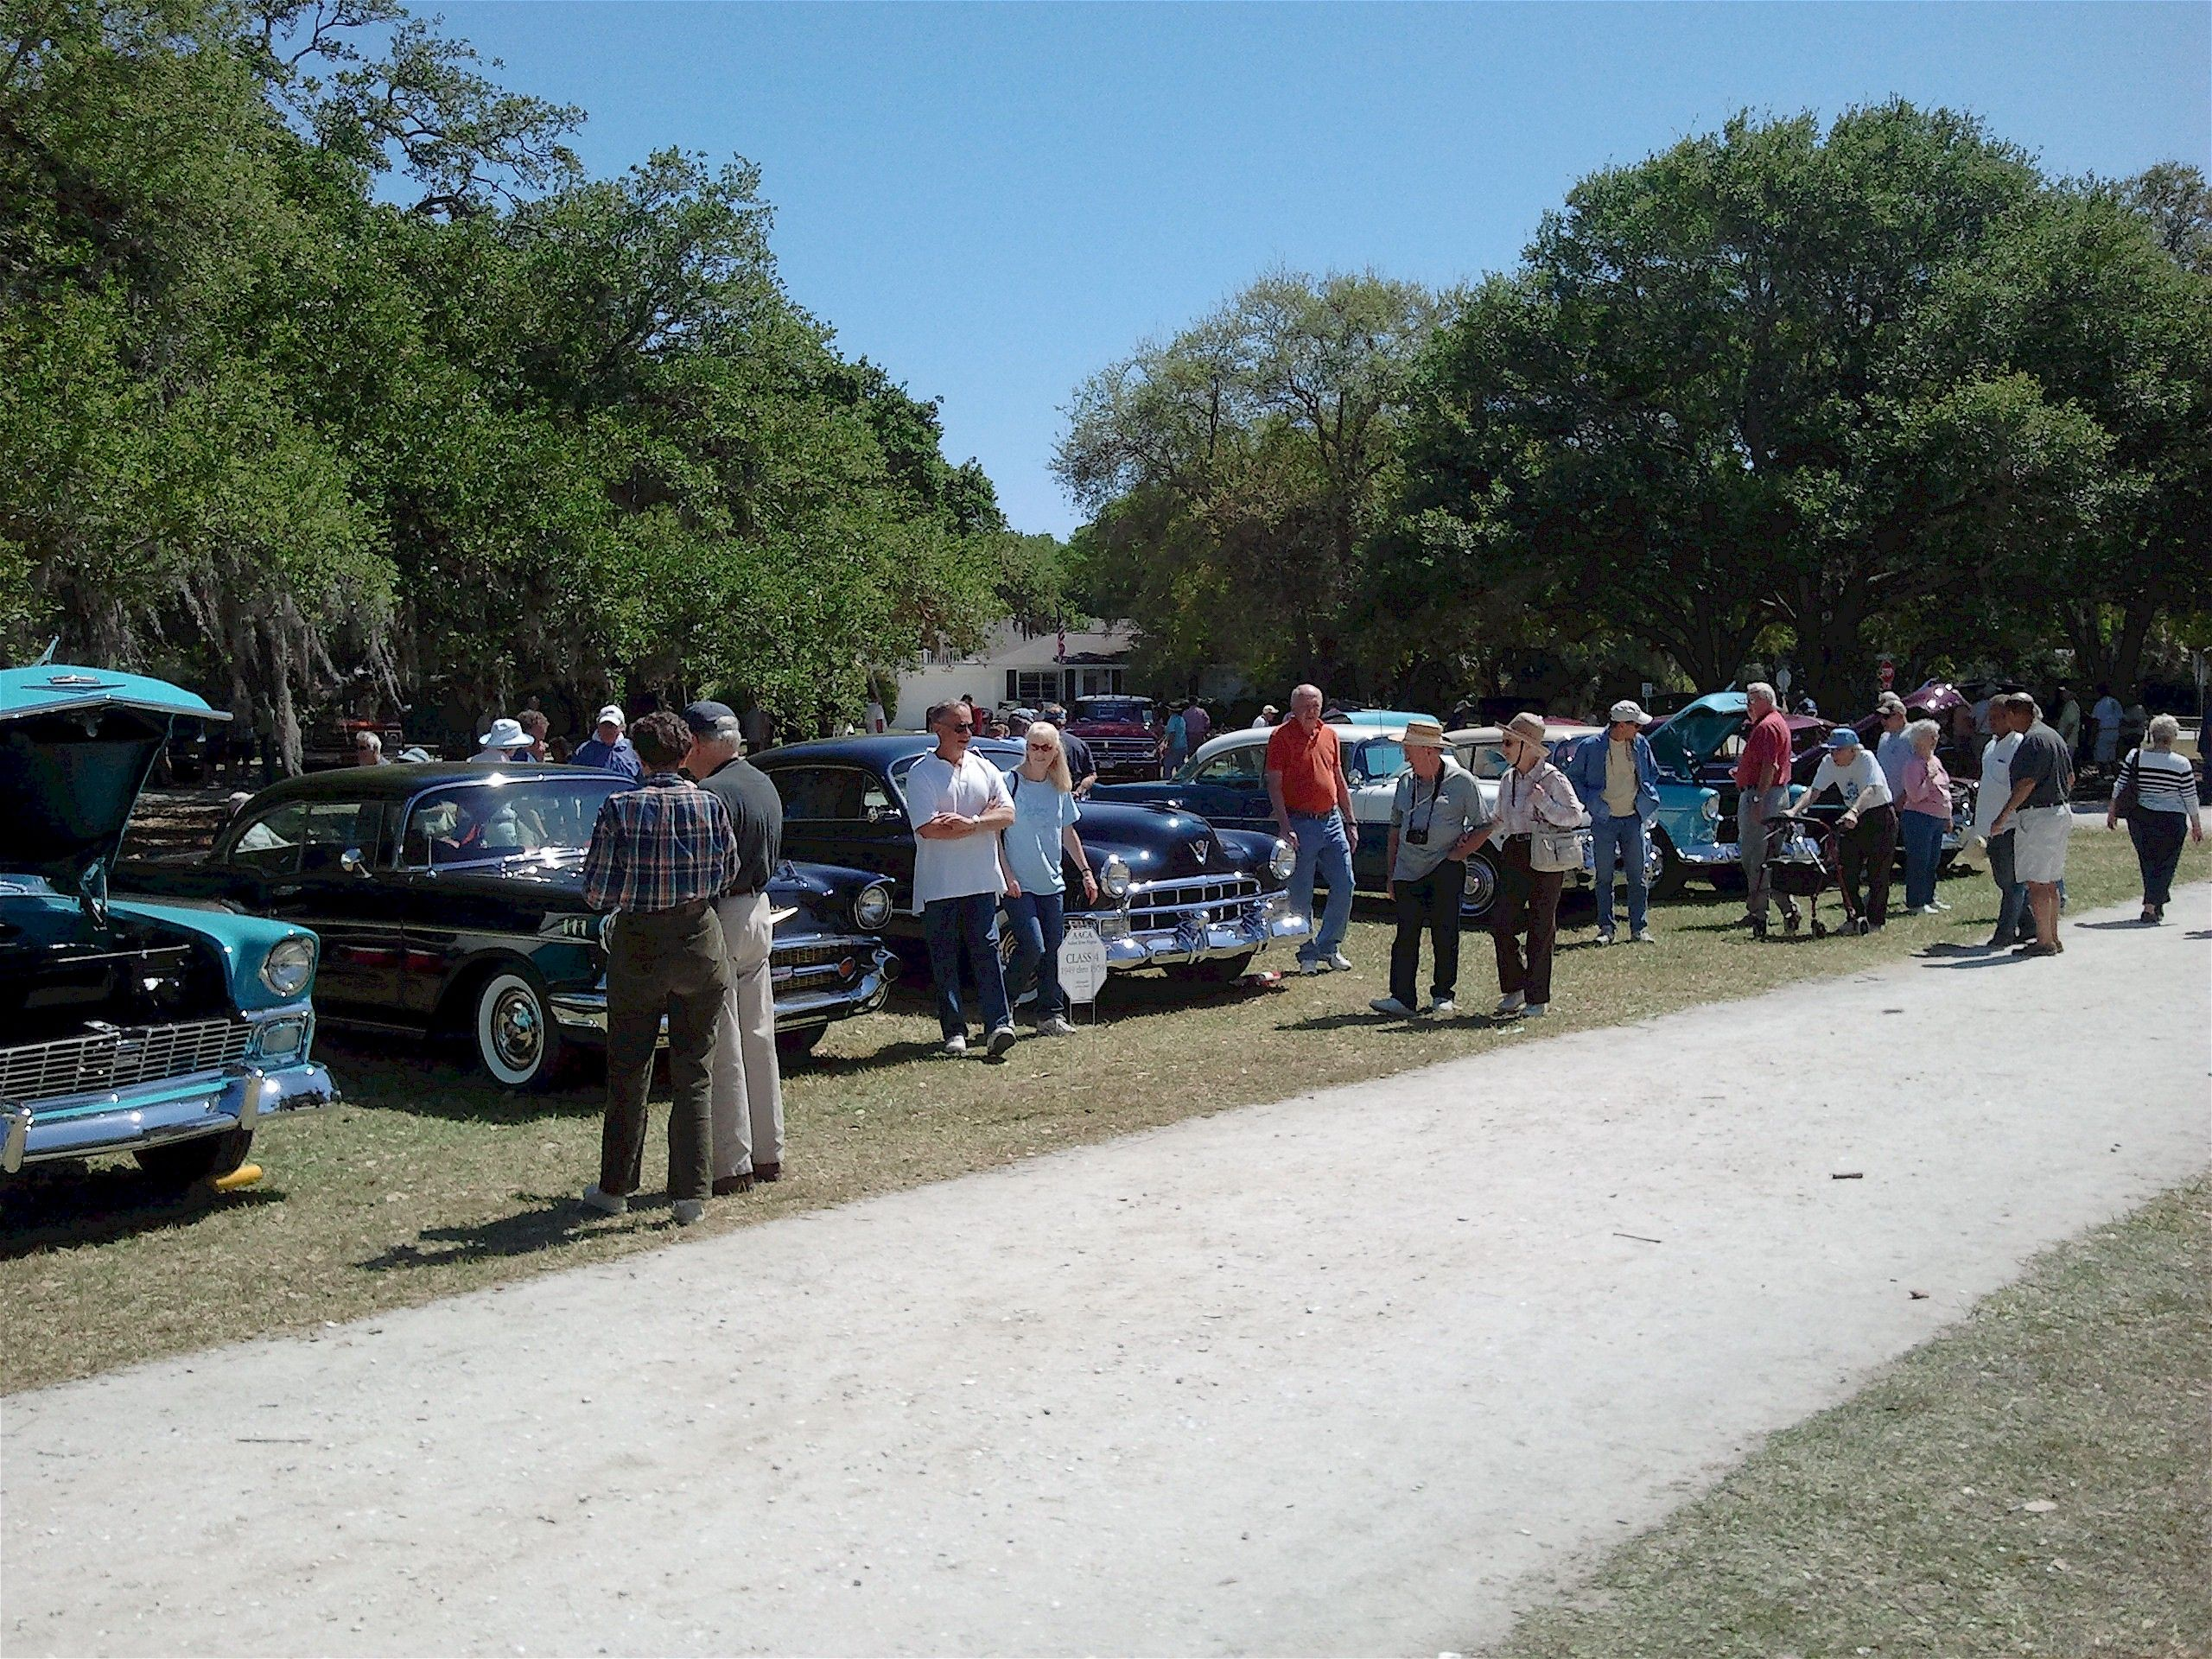 S Vintage Vero Beach Car Show Pinterest Vero Beach - Vero beach car show